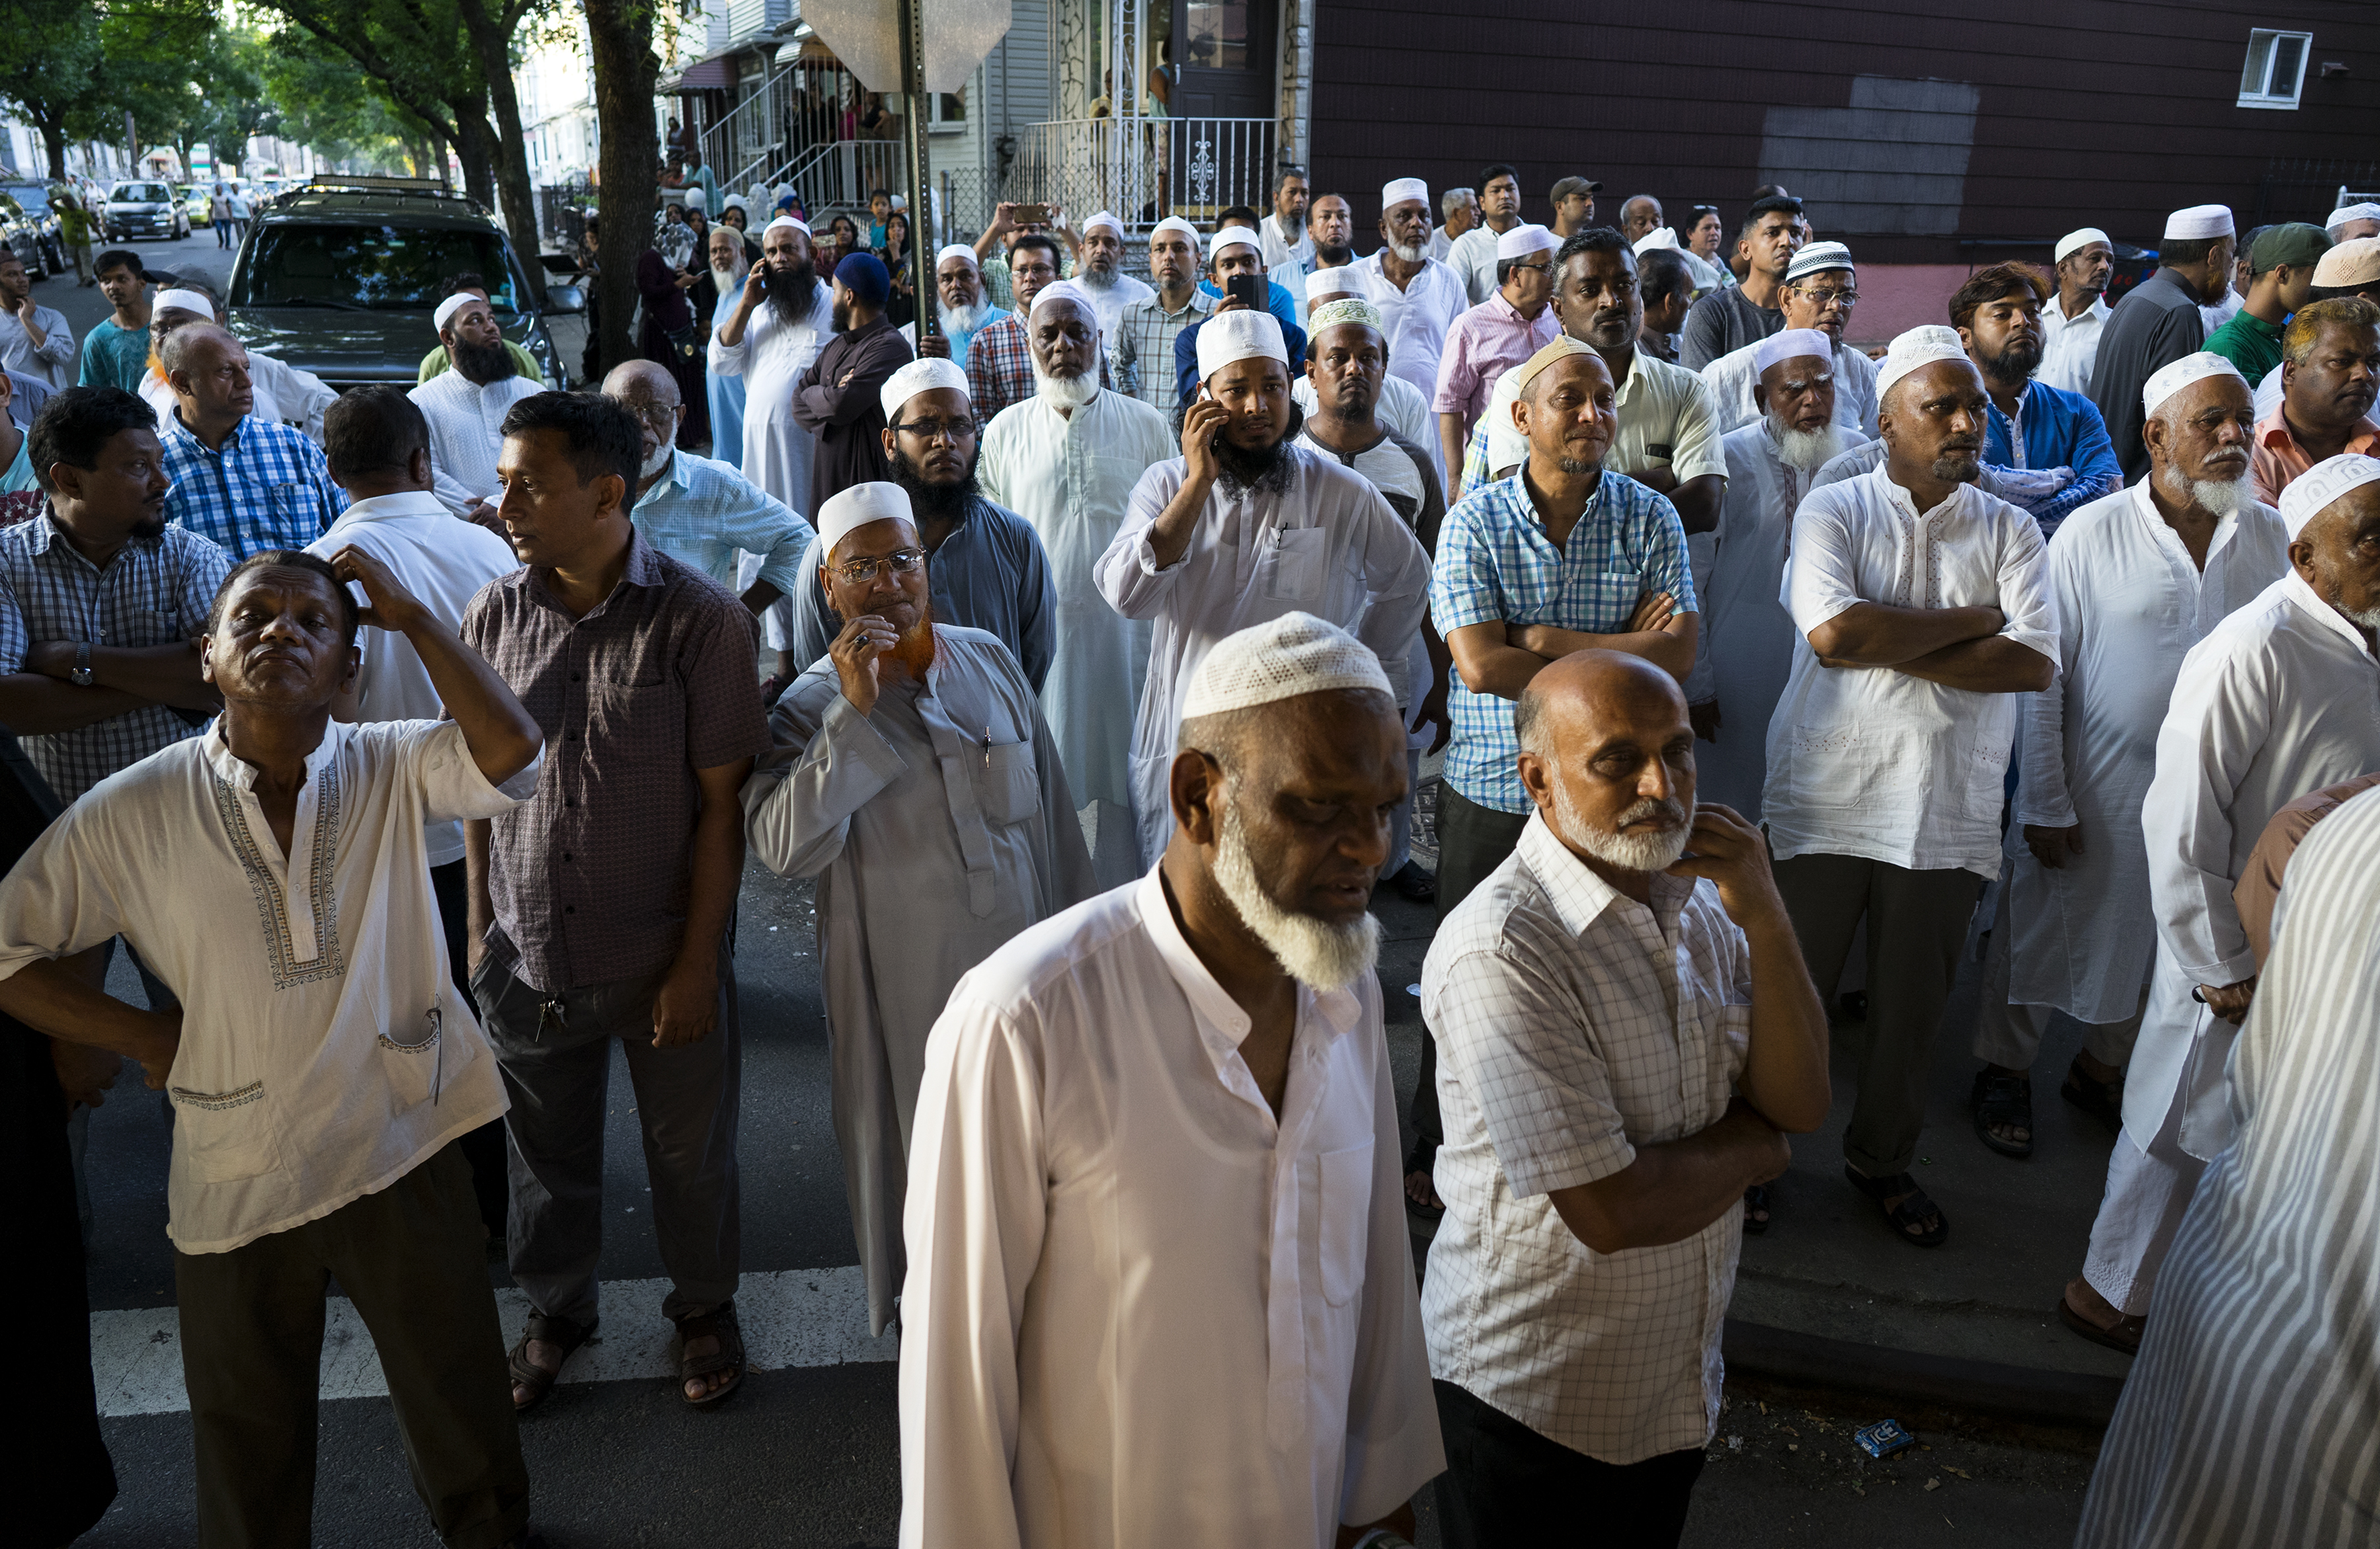 In this Saturday, Aug. 13, 2016, photo, people gather near a crime scene for a demonstration after the leader of a New York City mosque and an associate were fatally shot in a brazen daylight attack as they left afternoon prayers Saturday.